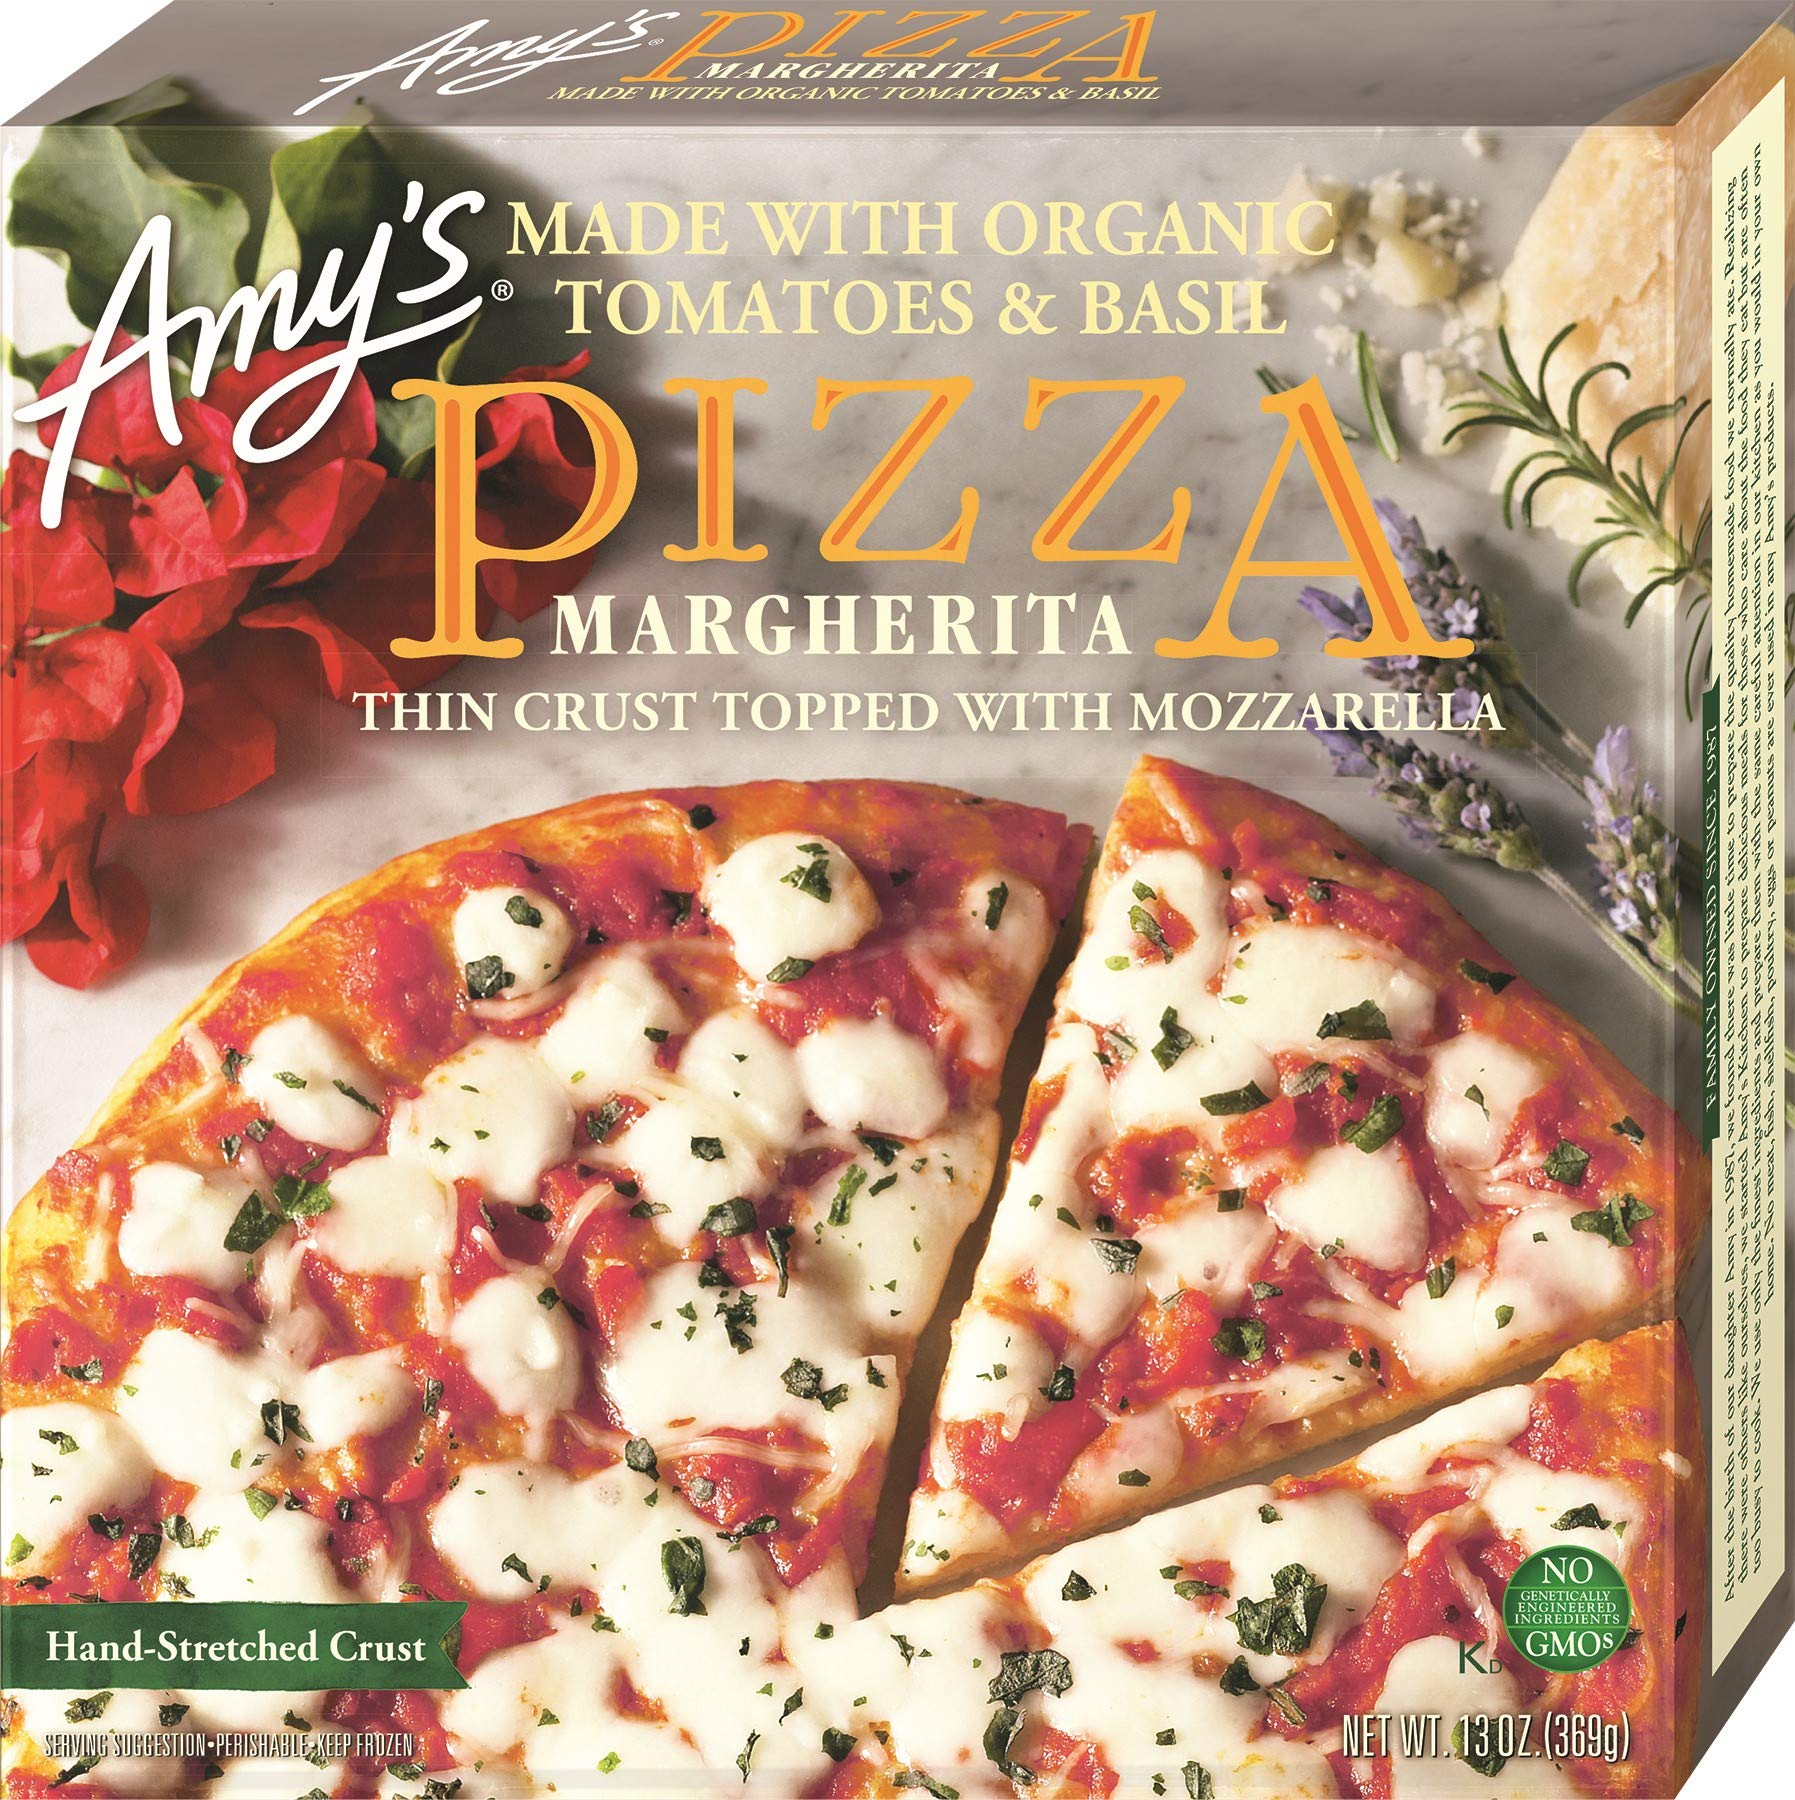 Amy's Organic Frozen Margherita Pizza, Hand-Stretched Crust, Full Size